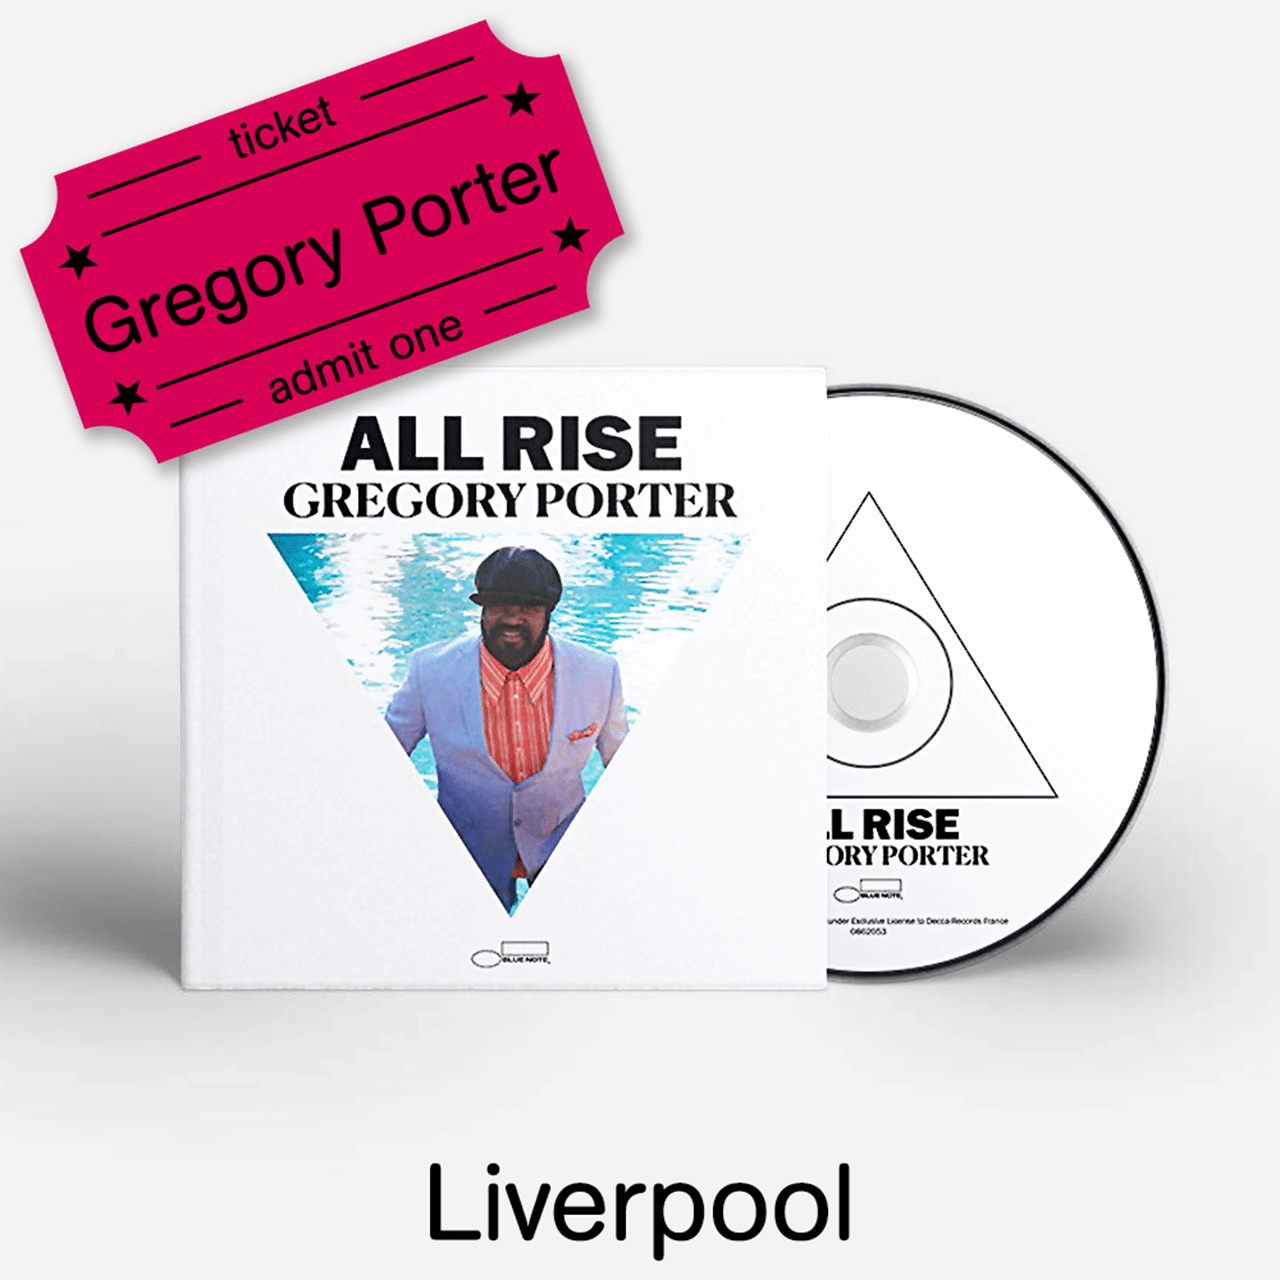 Gregory Porter - All Rise - Deluxe CD & Liverpool Academy e-Ticket - 1